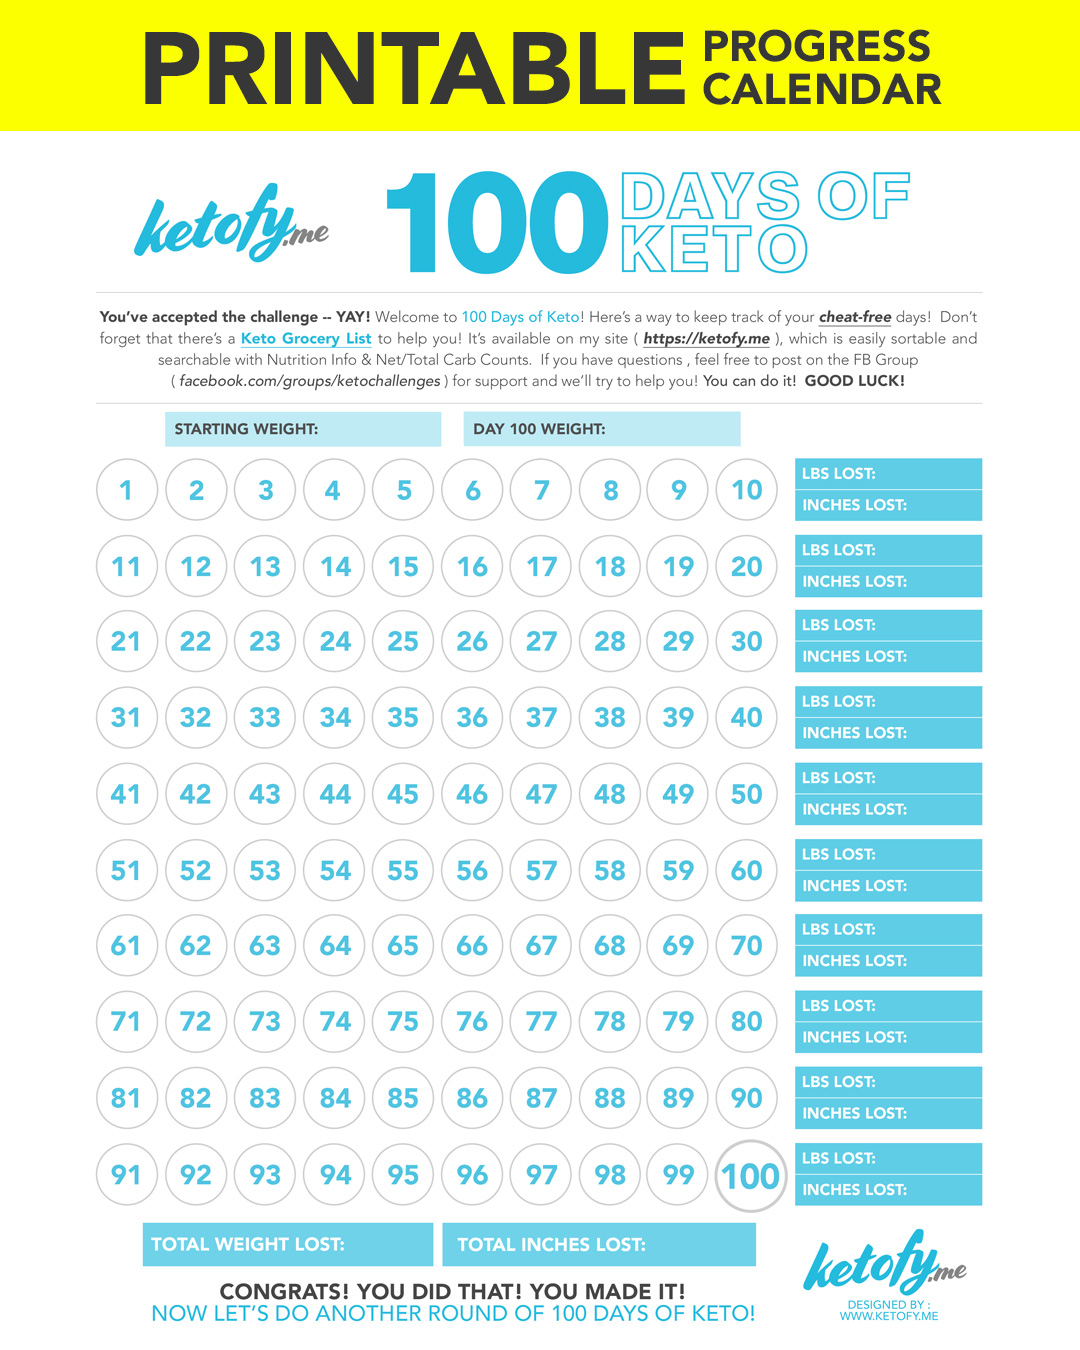 Keto ~ Fy Me | Cut Carbs, Not Flavor! • 100 Days Of Keto throughout 100 Days Of Keto Calendar